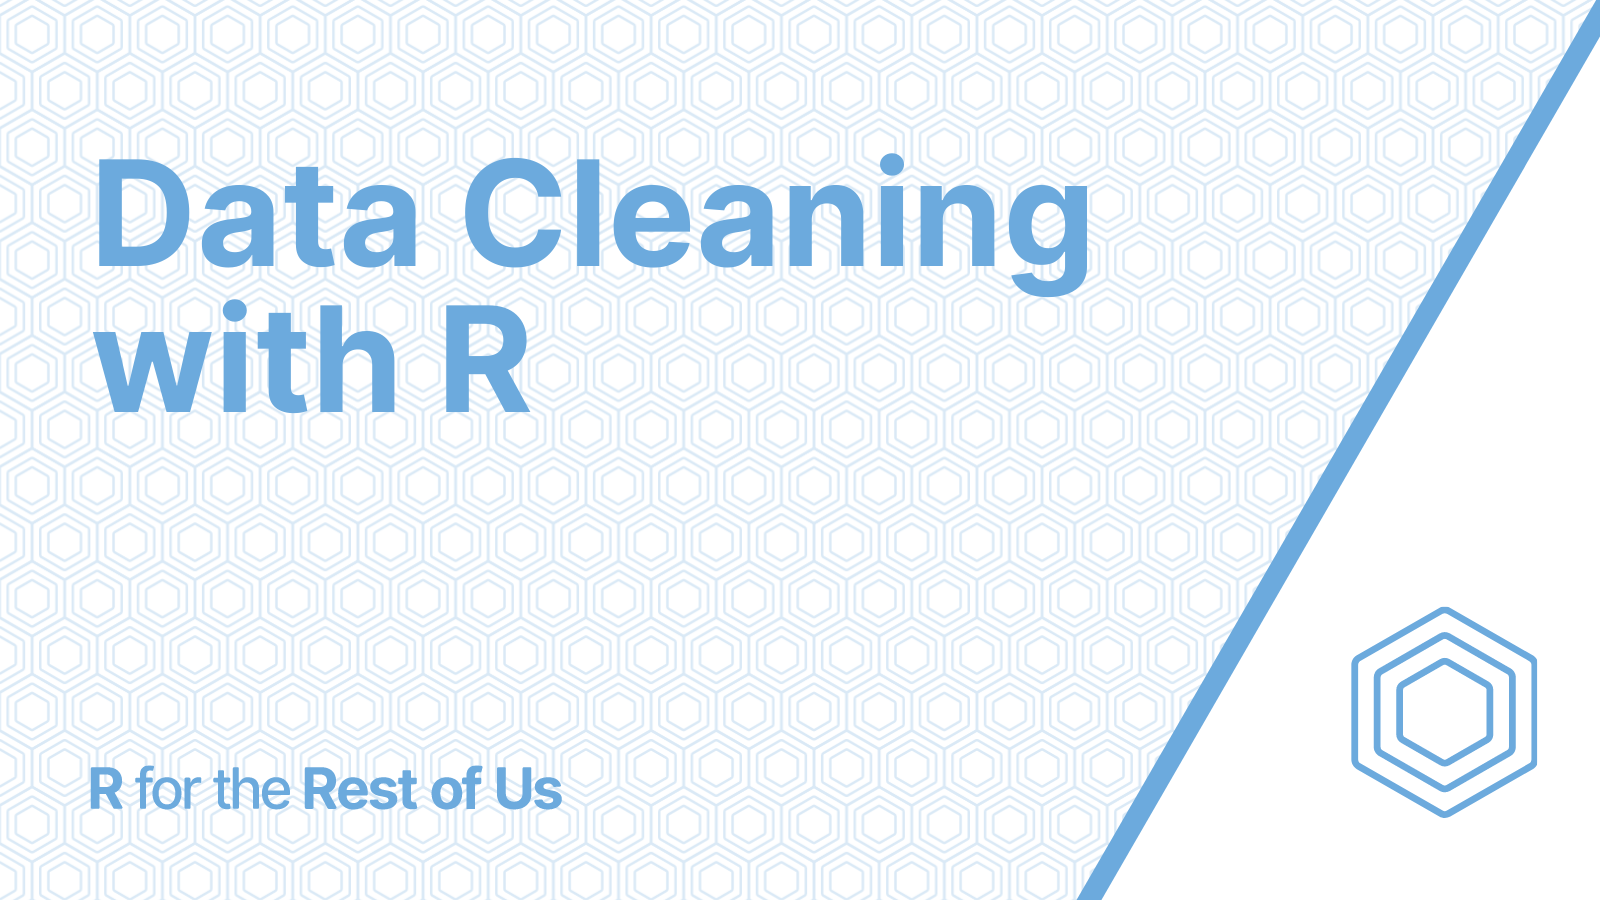 Data Cleaning with R